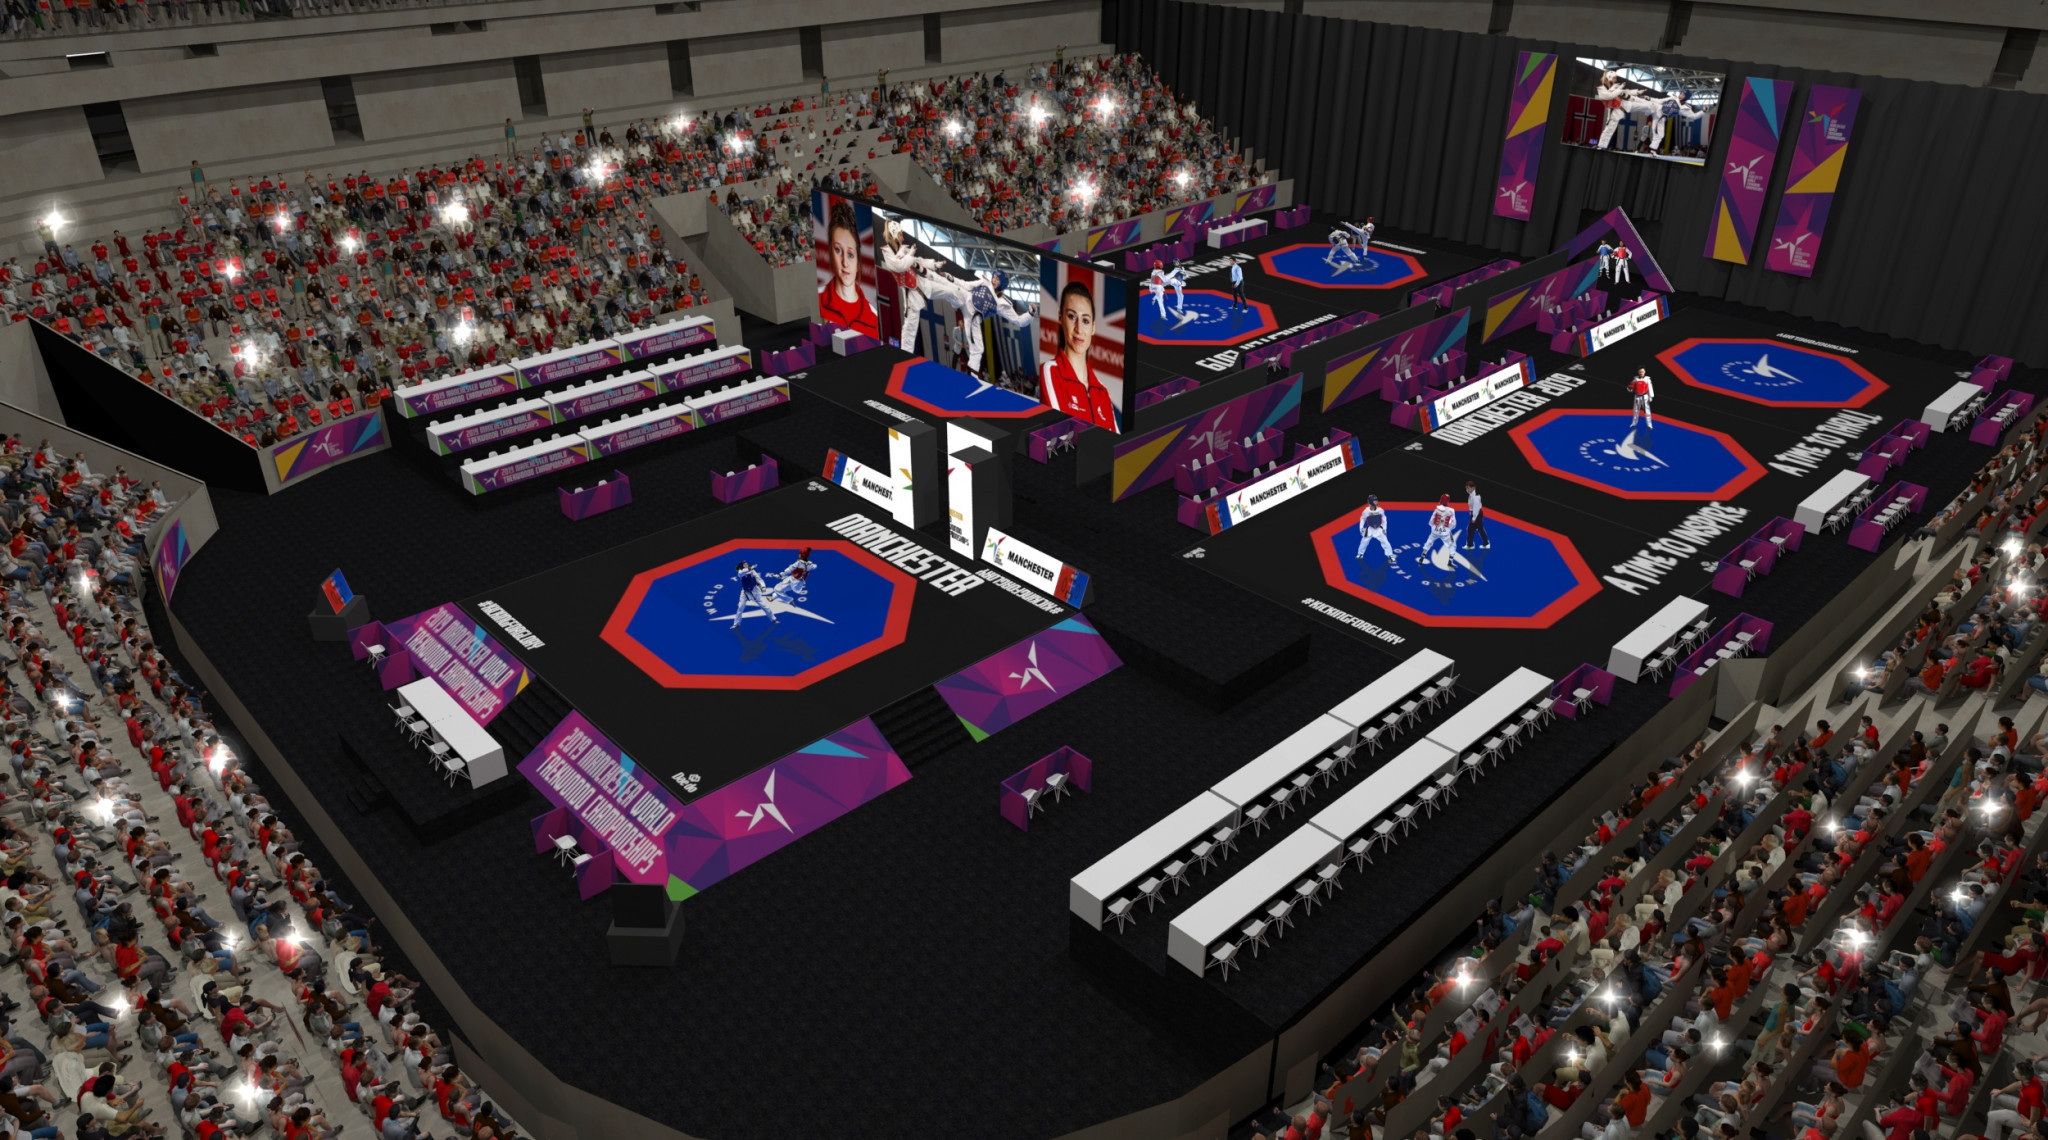 Seven courts will be set-up during day sessions ©World Taekwondo